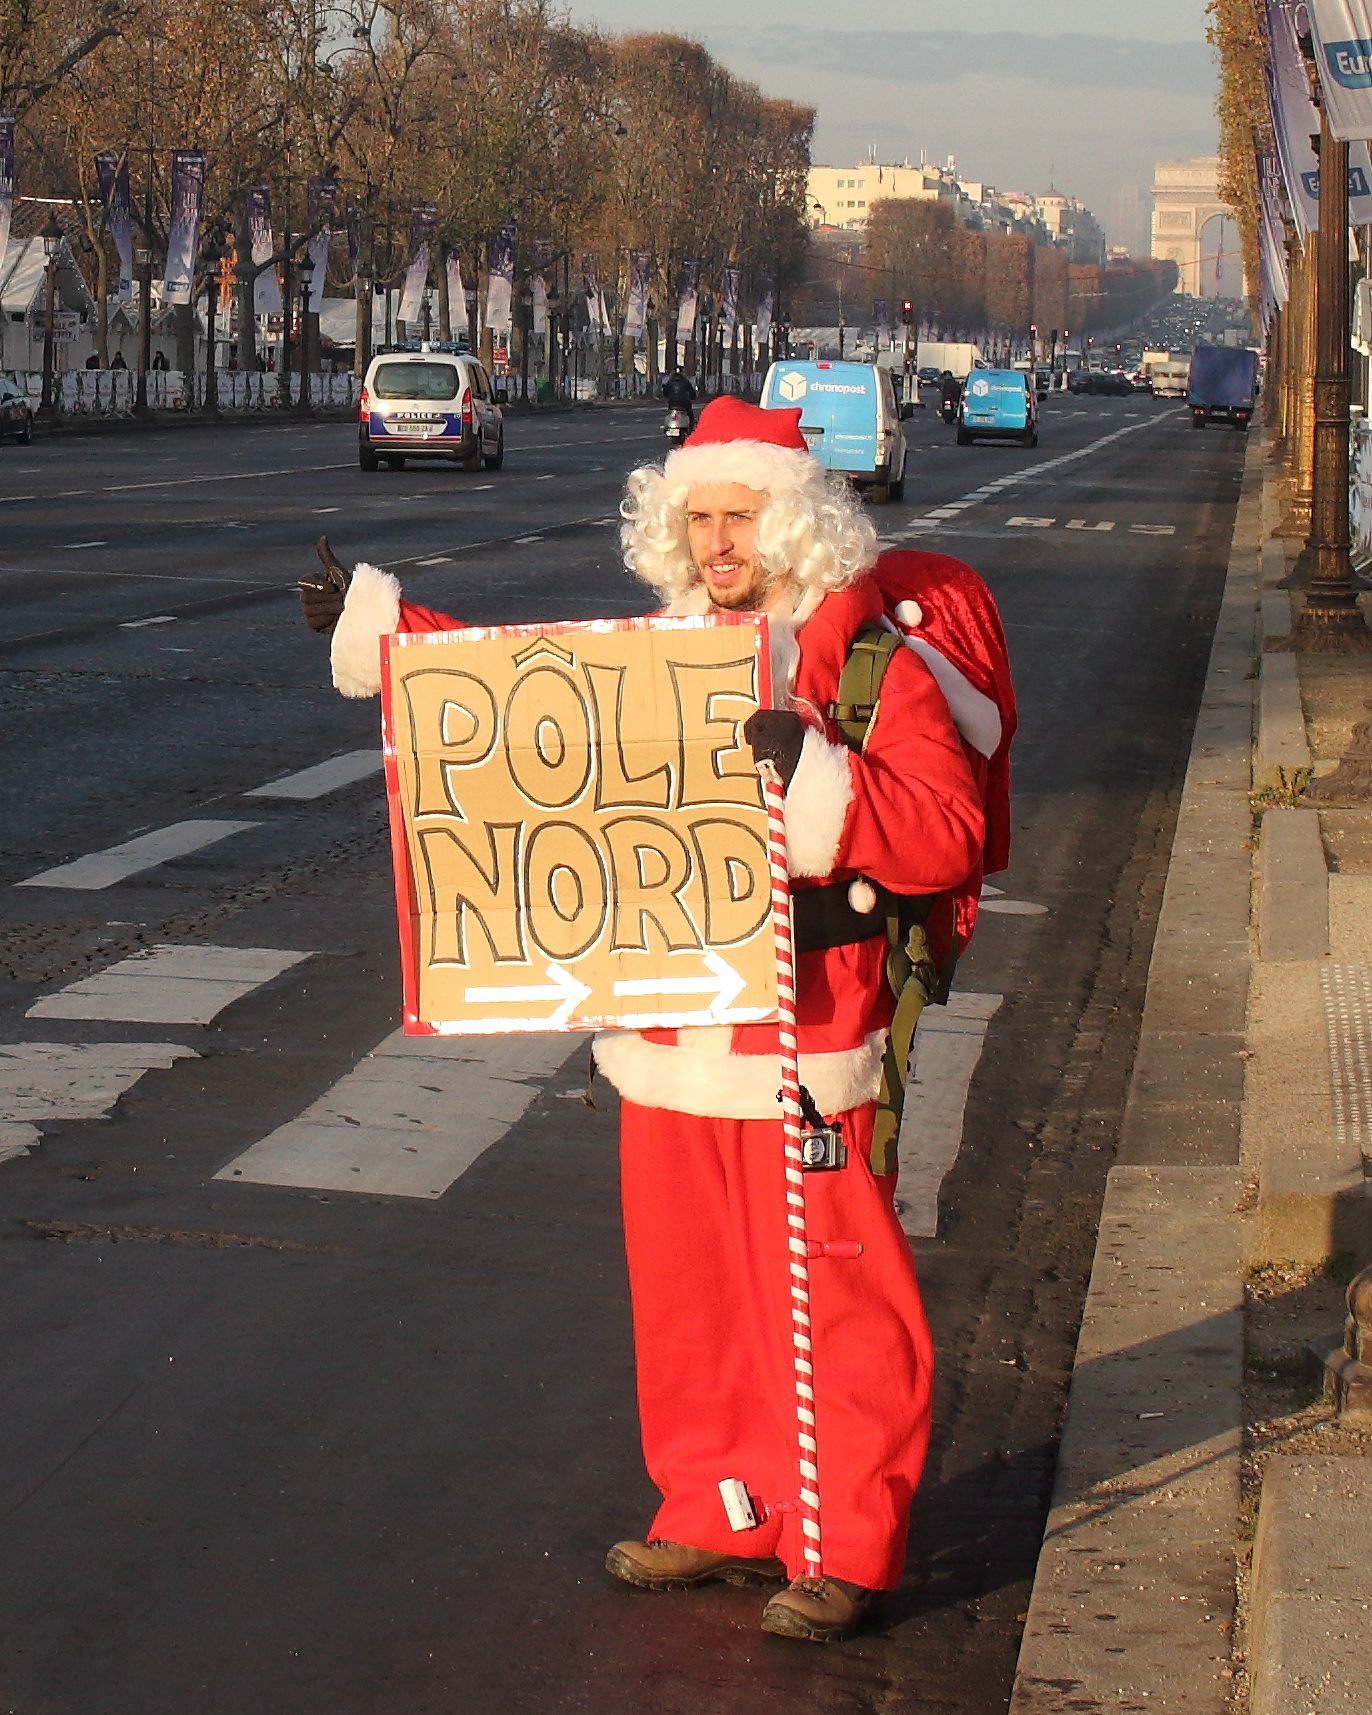 http://capitaineremi.com/wp-content/uploads/2016/12/champs-elysee.jpg